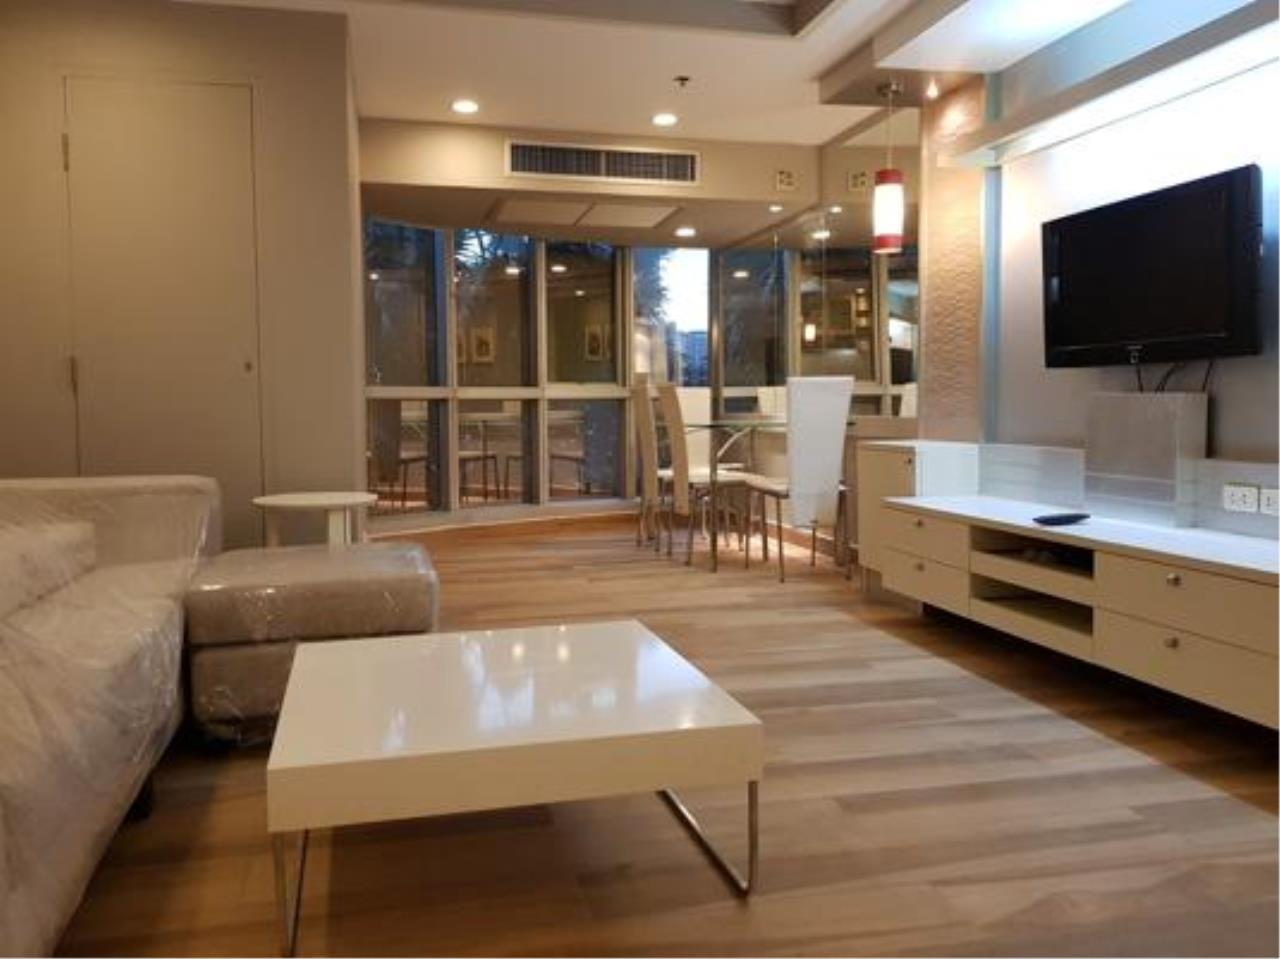 Quality Life Property Agency's Condo 1 Bedroom For Rent At The Trendy Condominium , Many Units Available Here 3